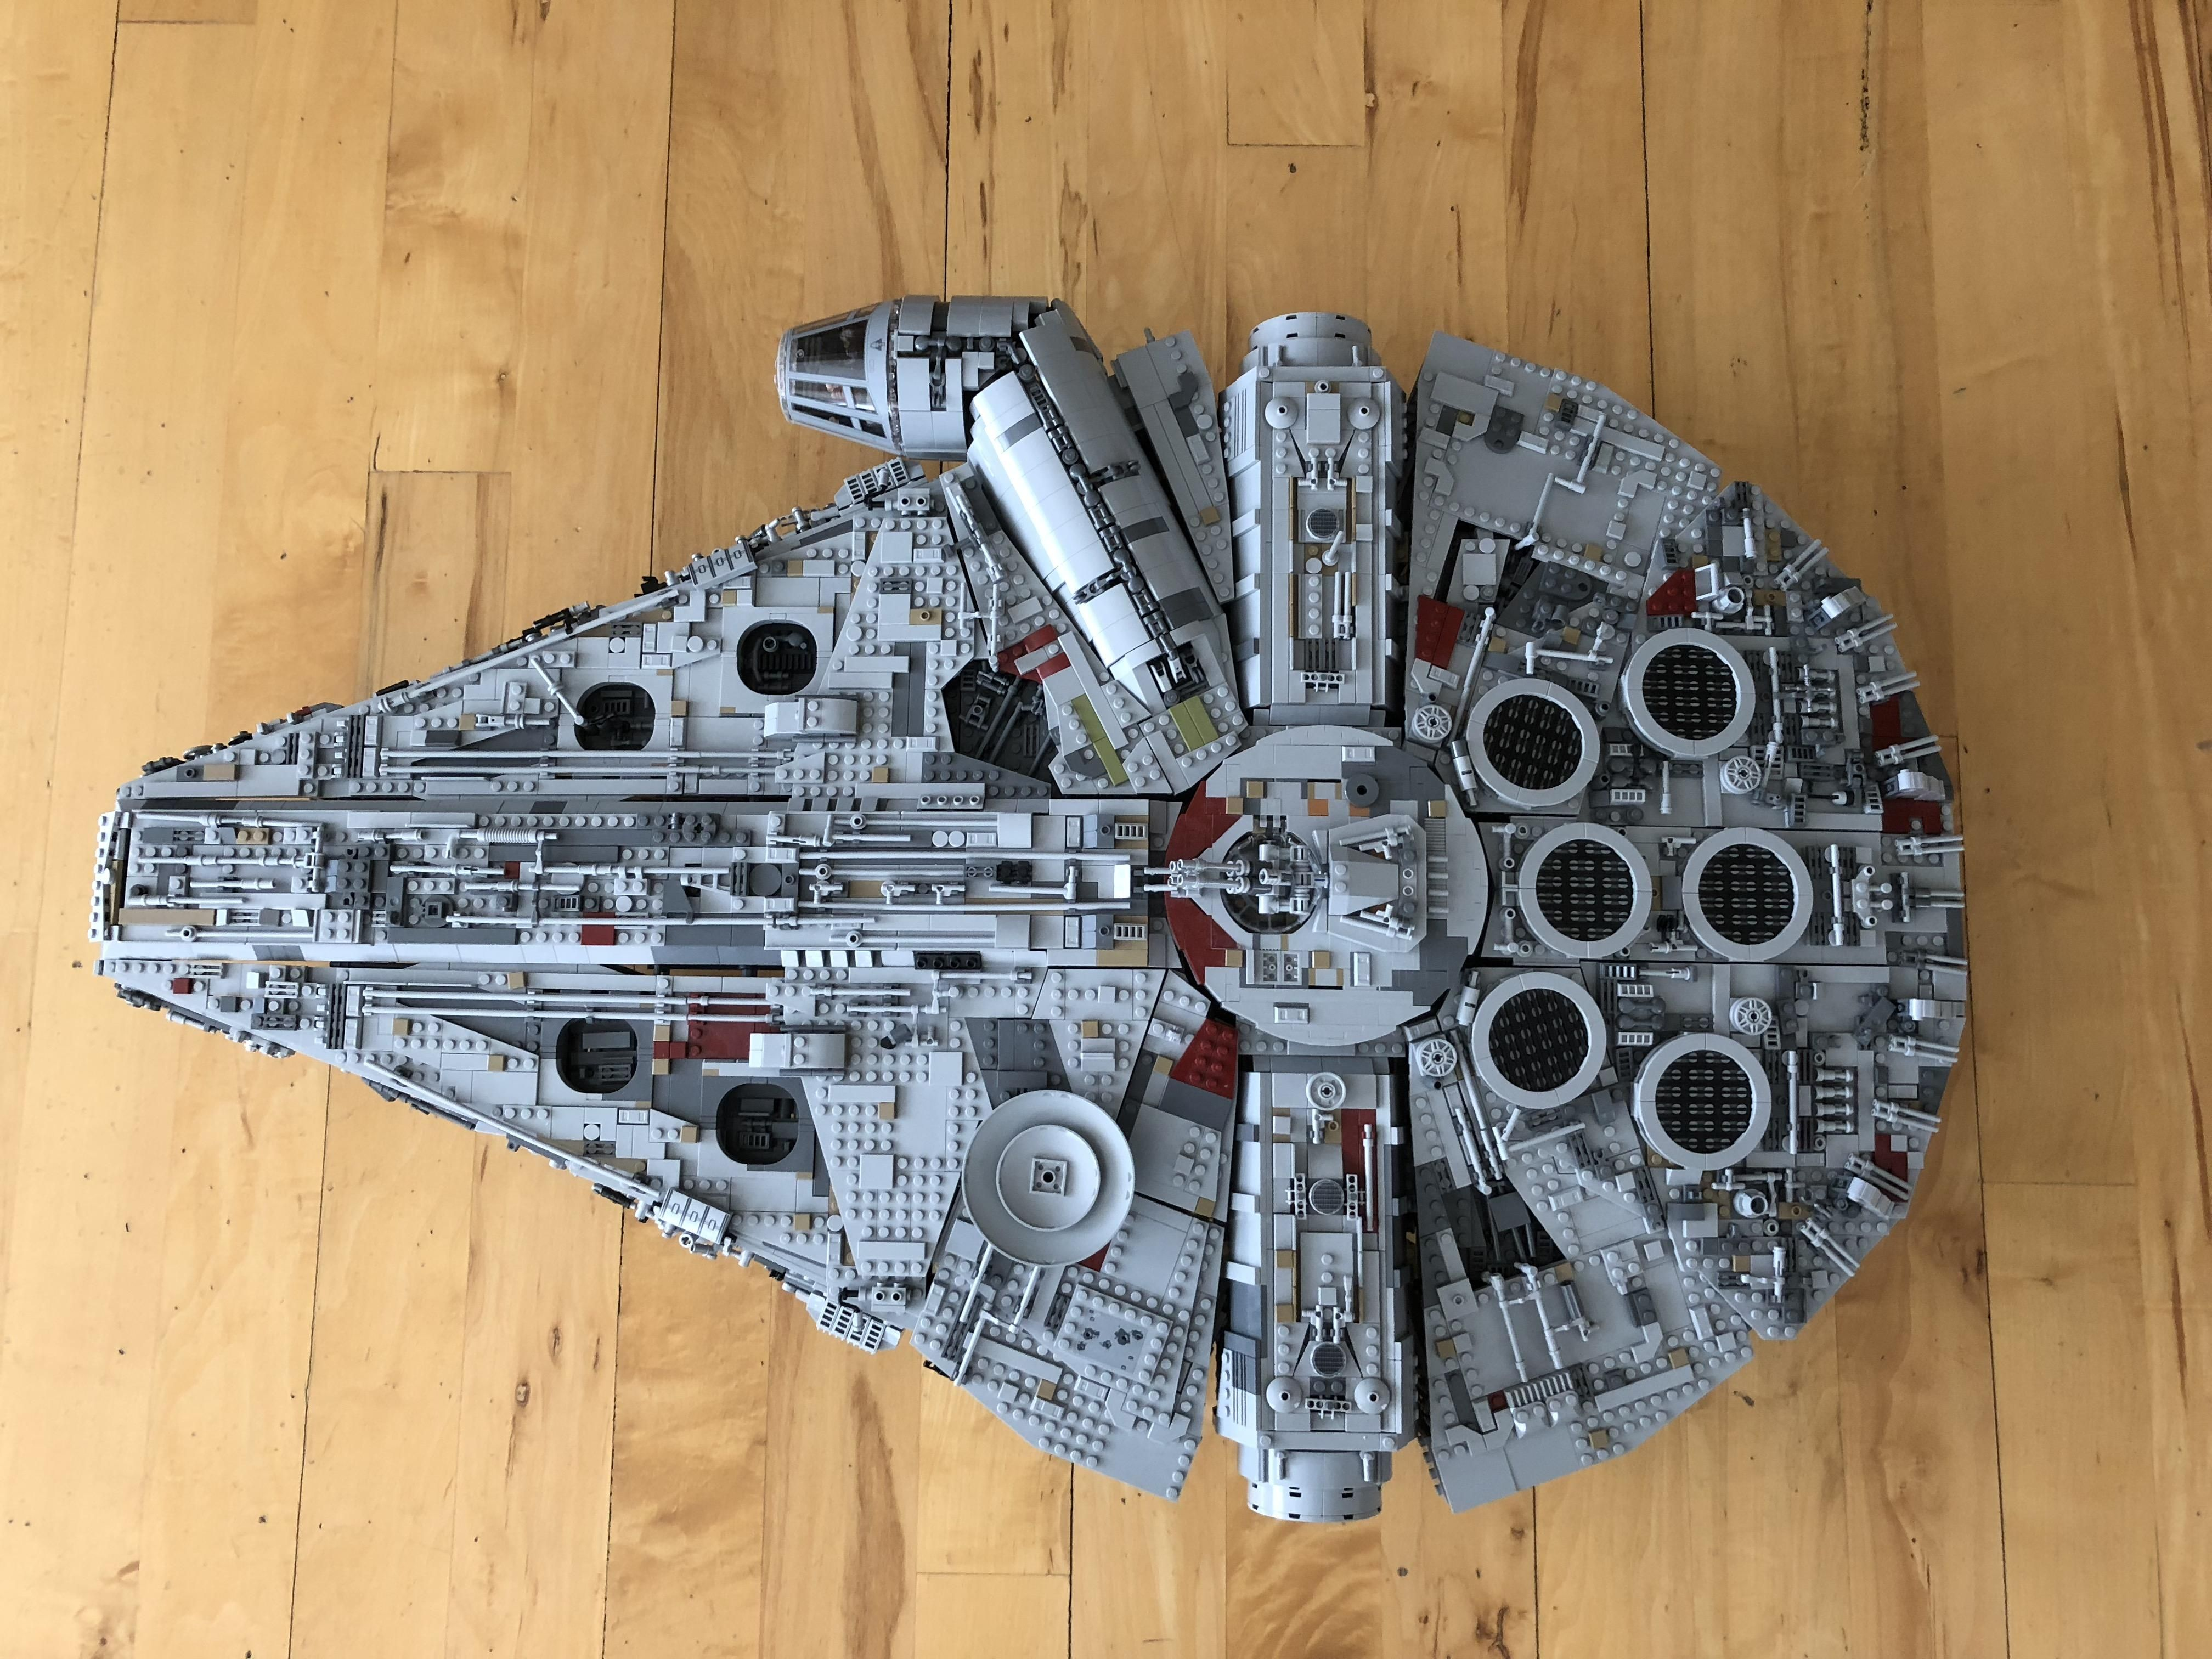 U Thespyishere Modified His Lego Ucs Millennium Falcon And Added A Front Section In Between The Mandibles Like W Lego Star Wars Lego Ucs Millennium Falcon Lego